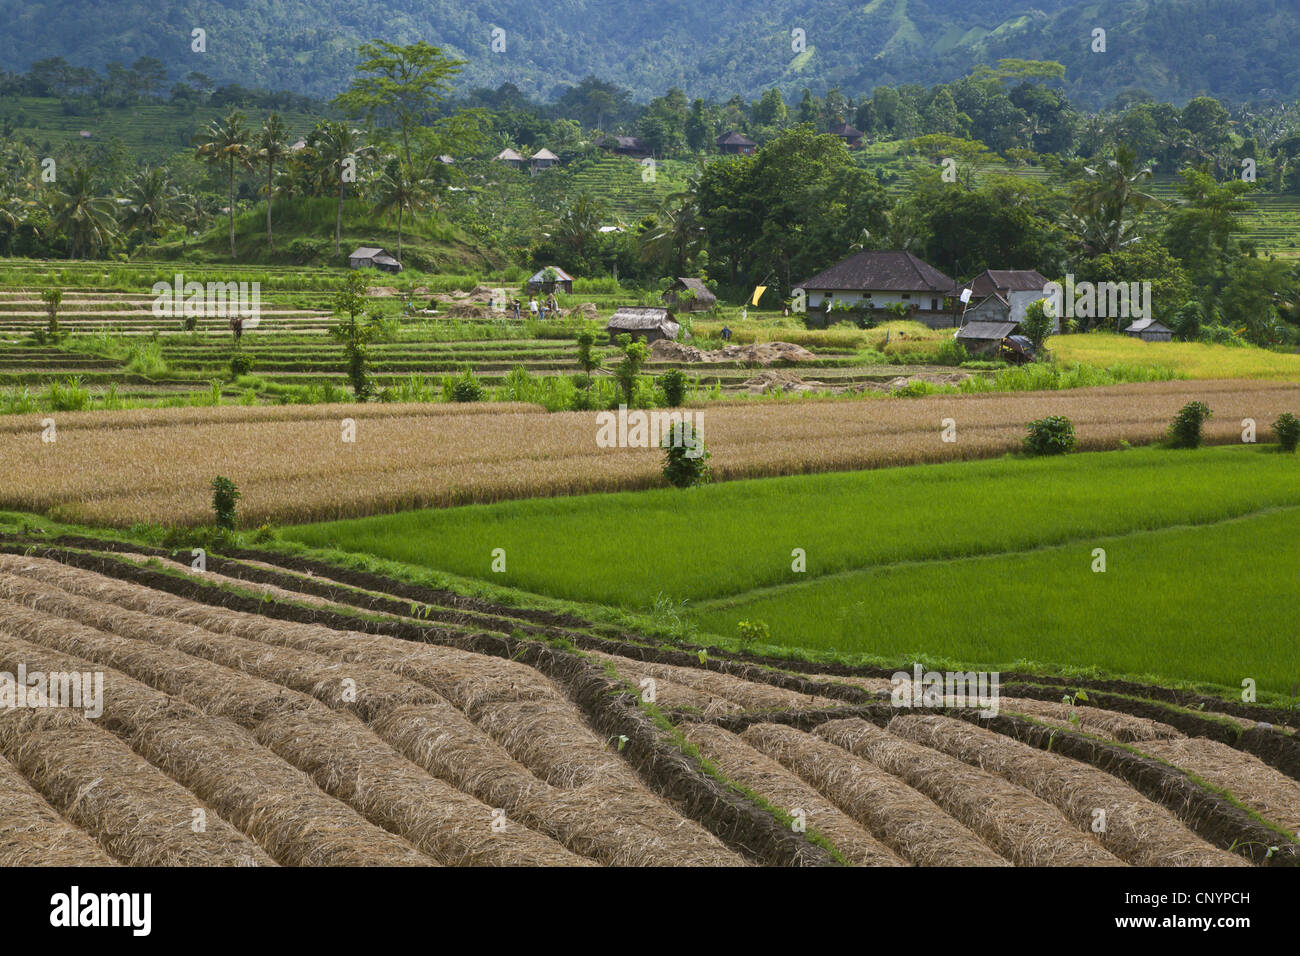 rice terraces in fertile valleys, Indonesia, Bali - Stock Image